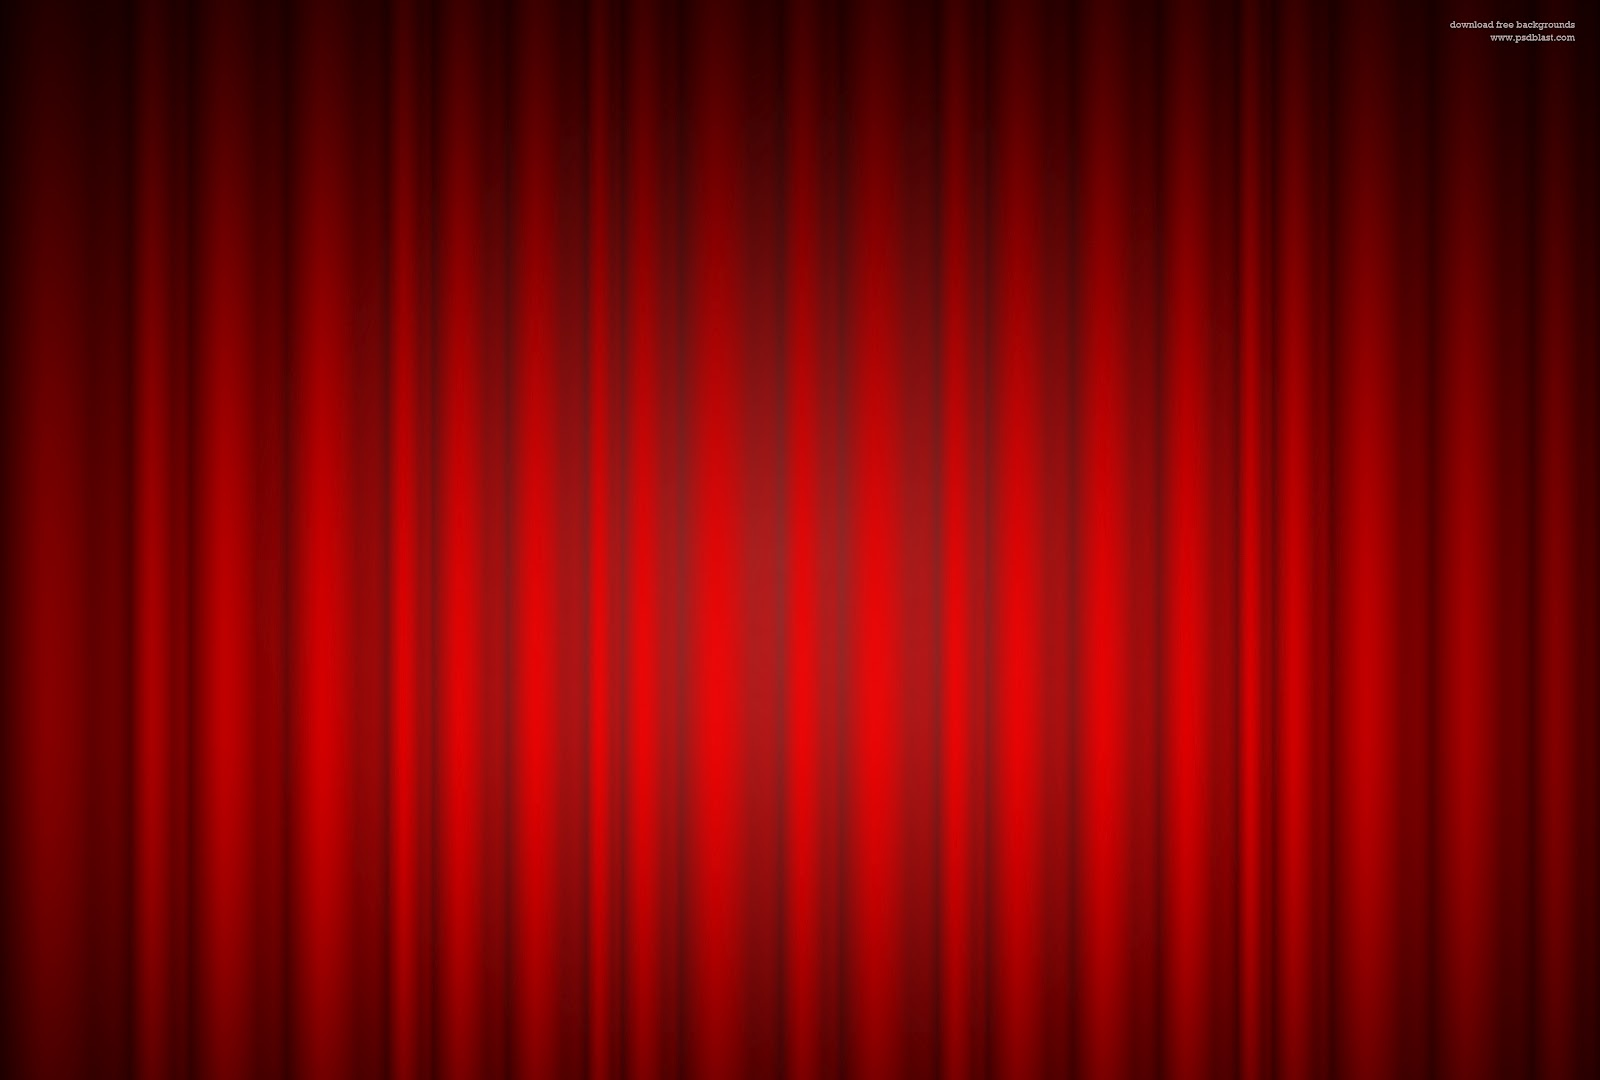 Red velvet curtain wallpaper - Red Curtain Background